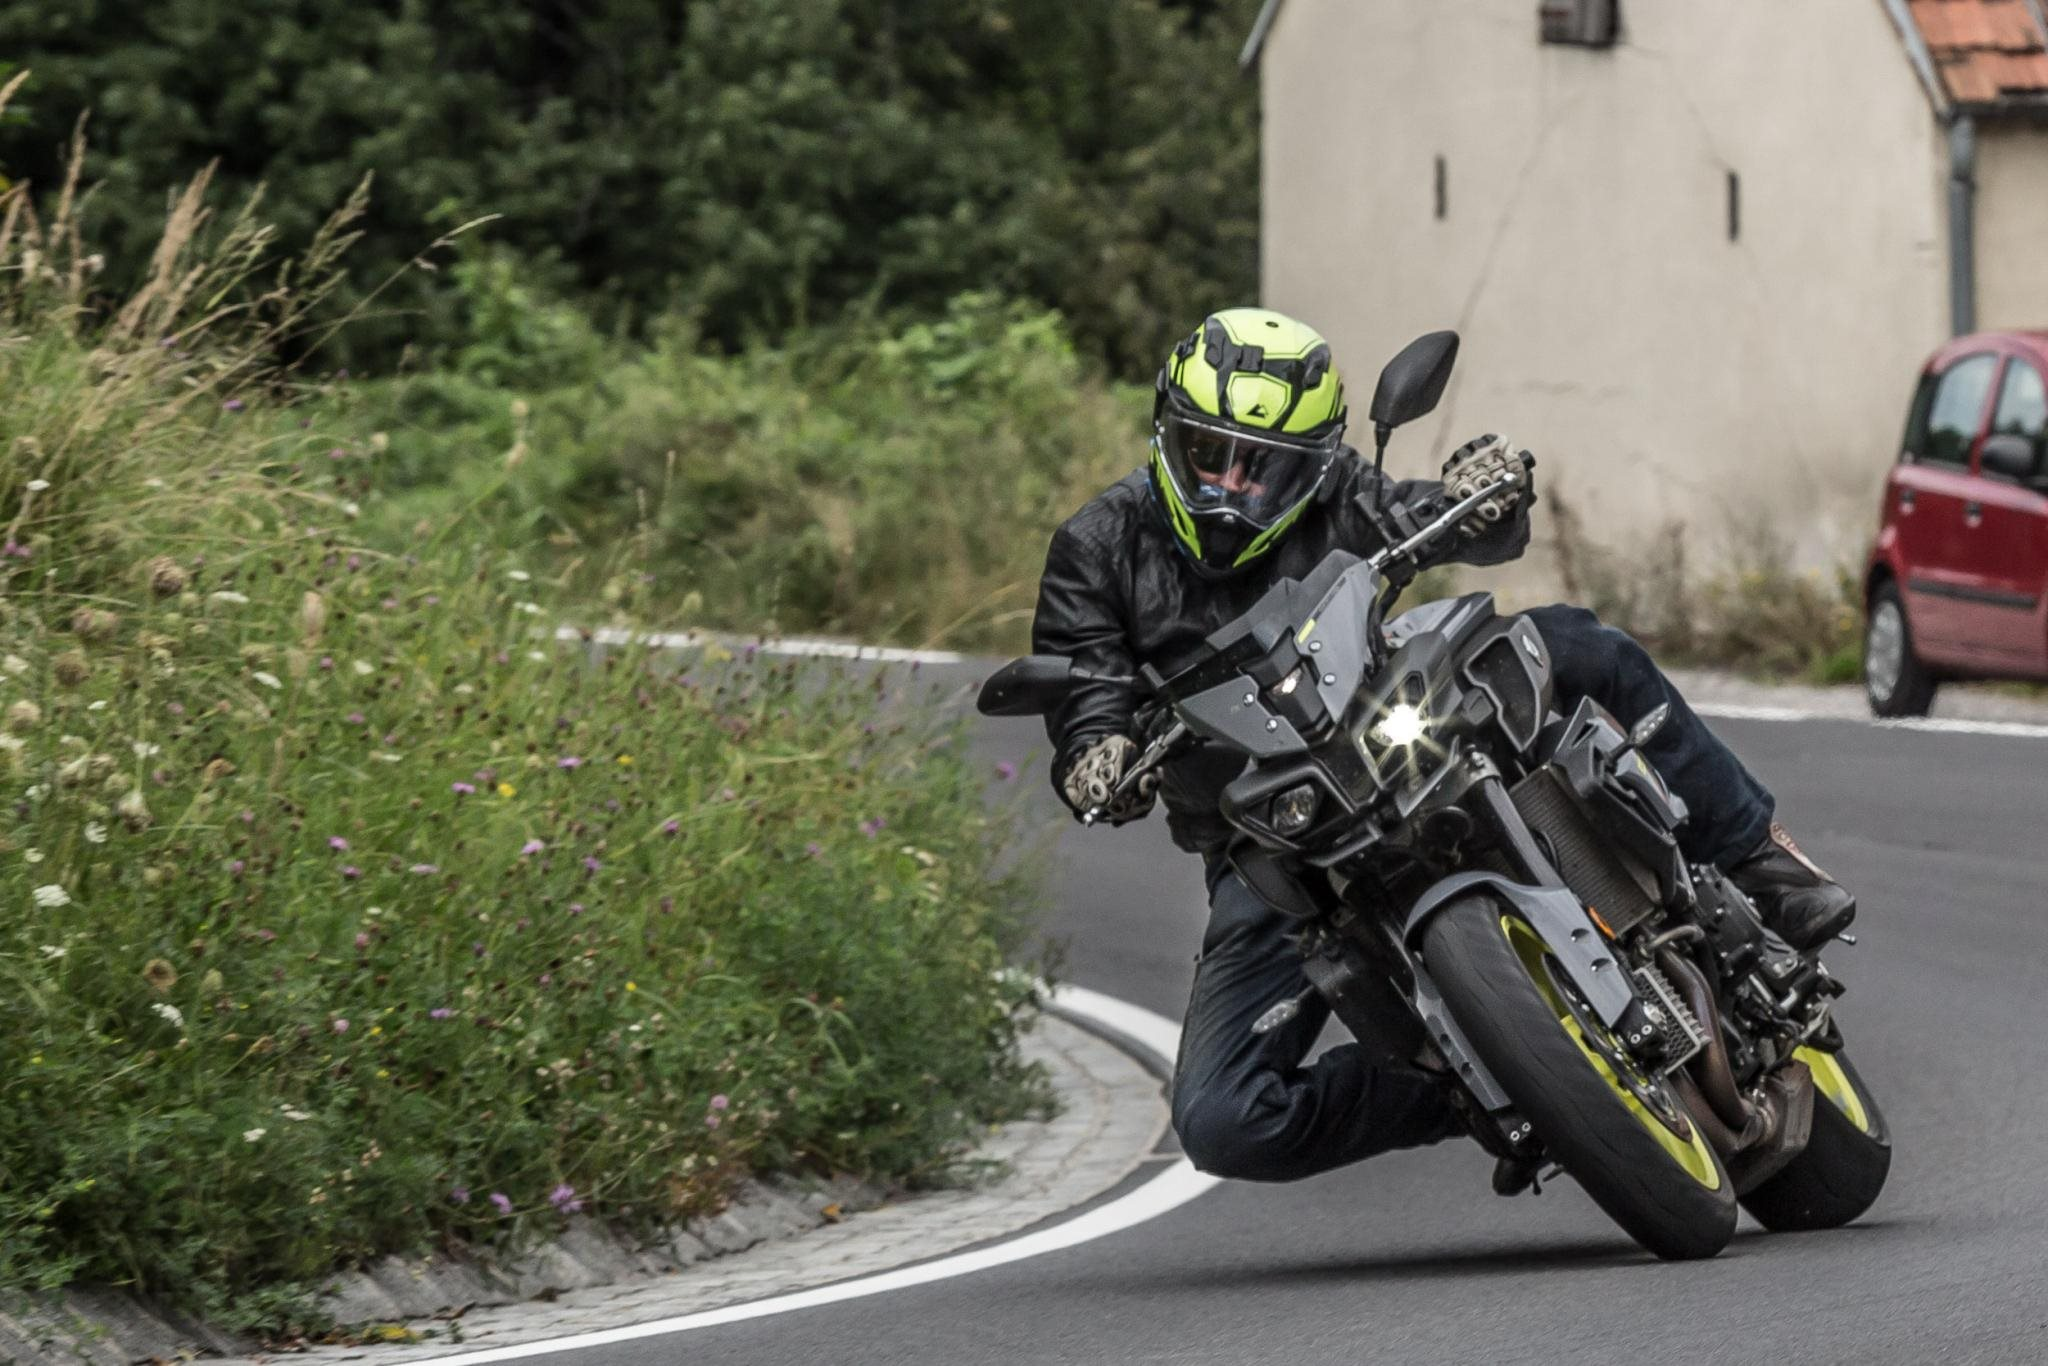 Vierzylinder Power-Naked Bike Vergleich Test 2016 Foto